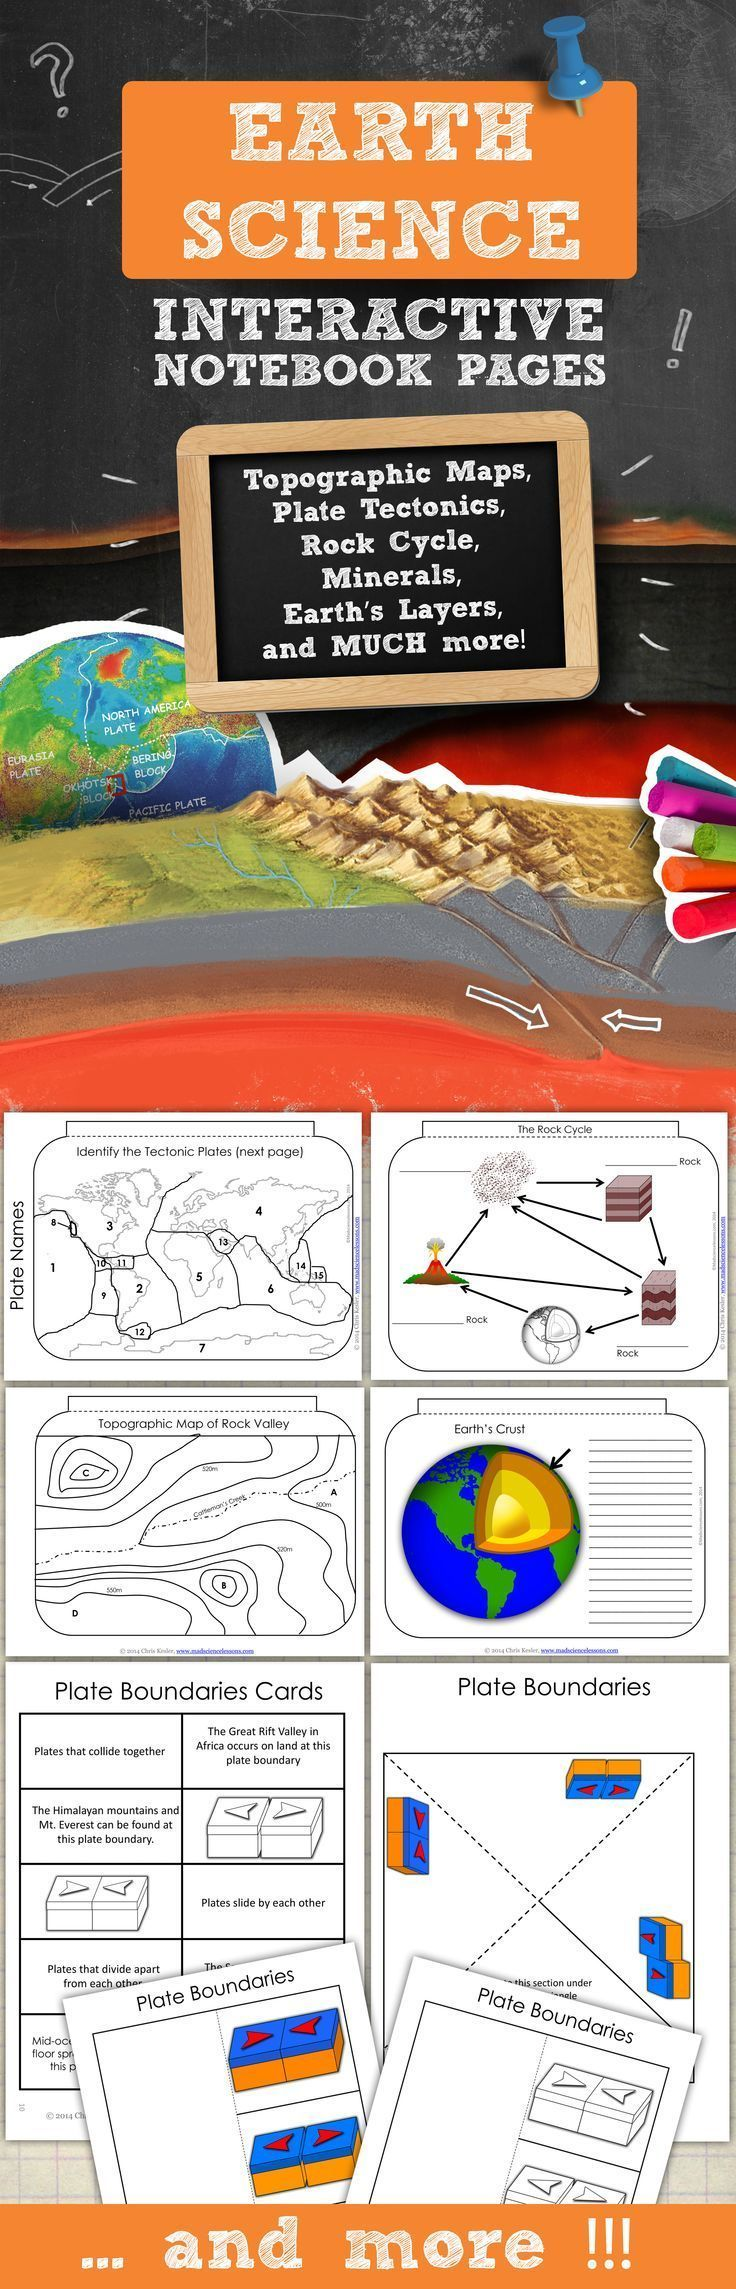 Earth Science Interactive Notebook Pages   Earth science ...